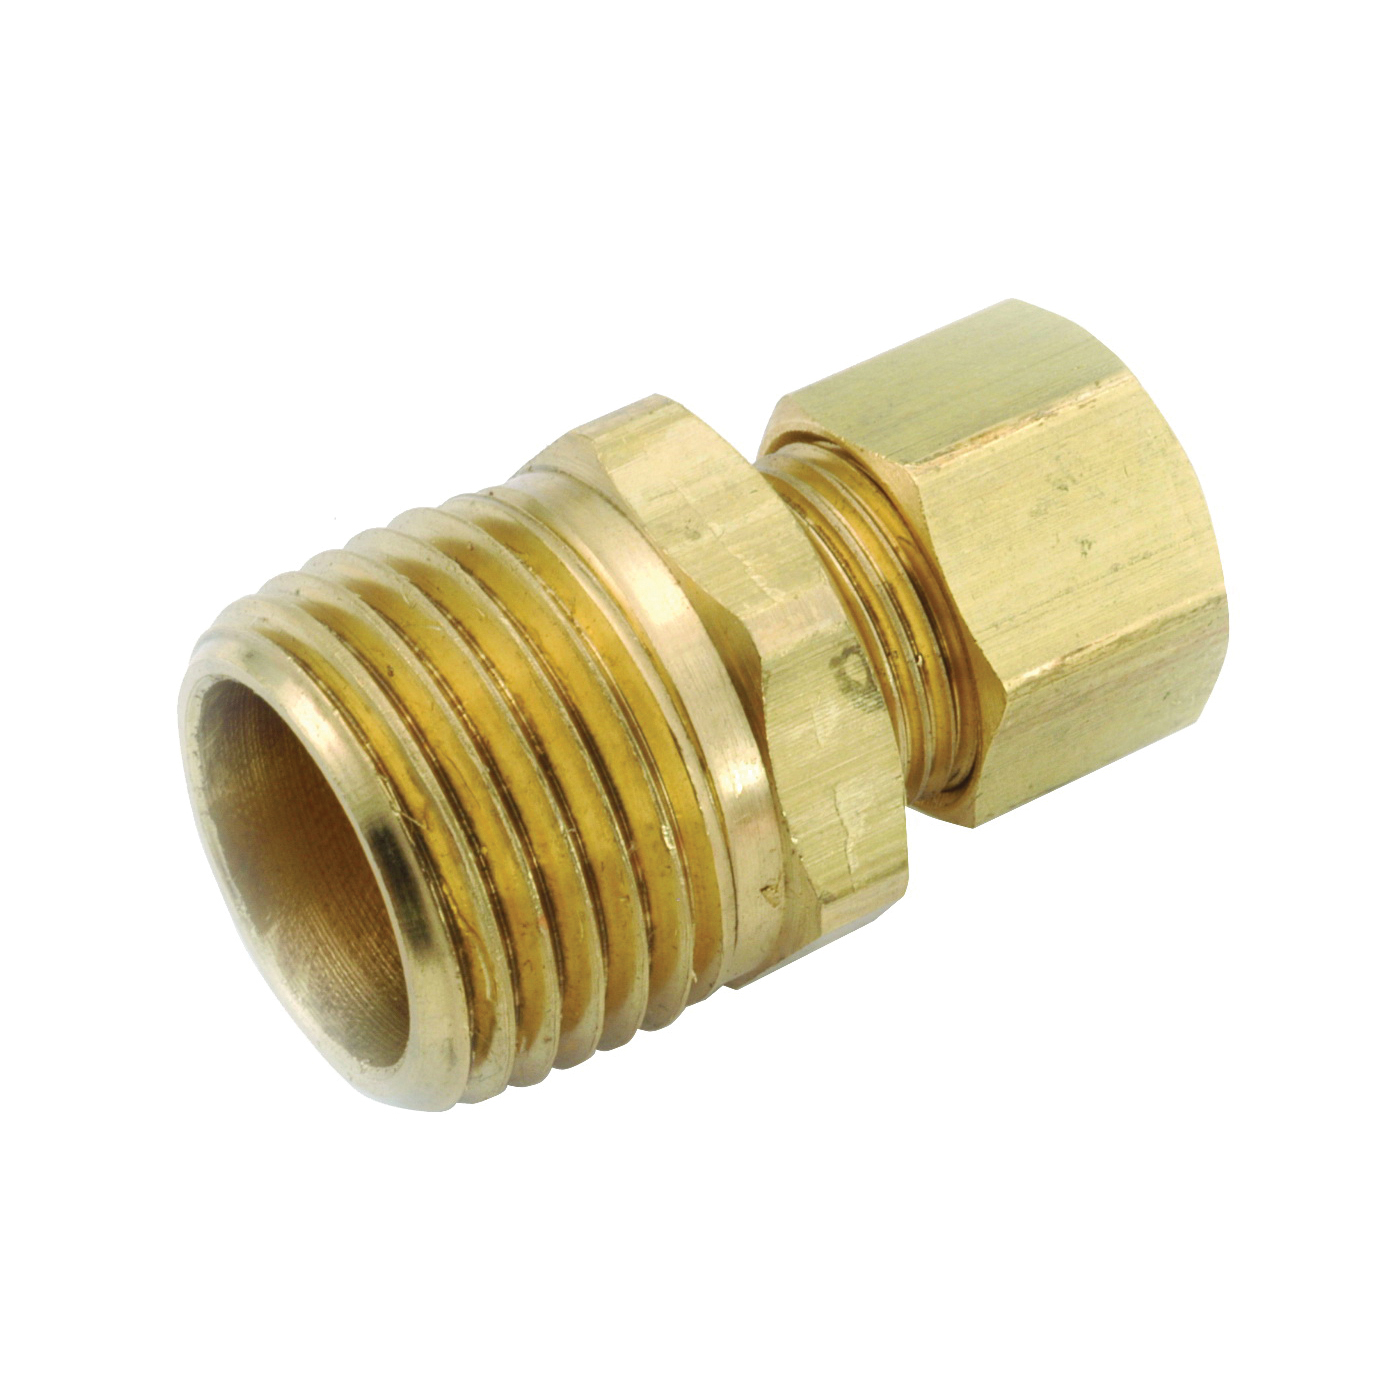 Picture of Anderson Metals 750068-0604 Connector, 3/8 in Compression, 1/4 in Male